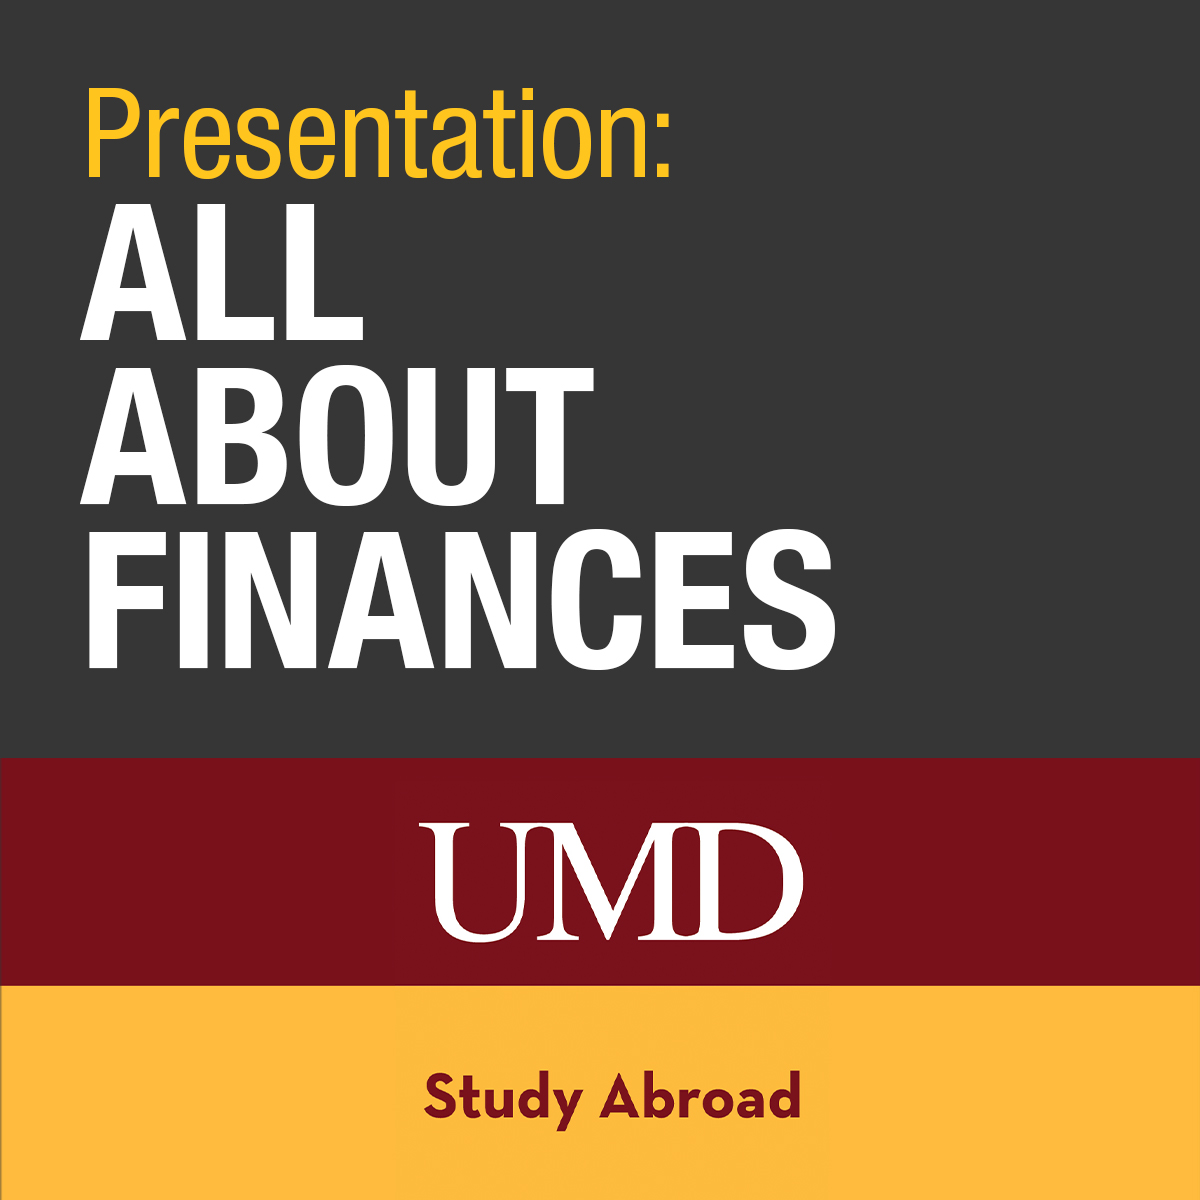 Presentation - All about finances